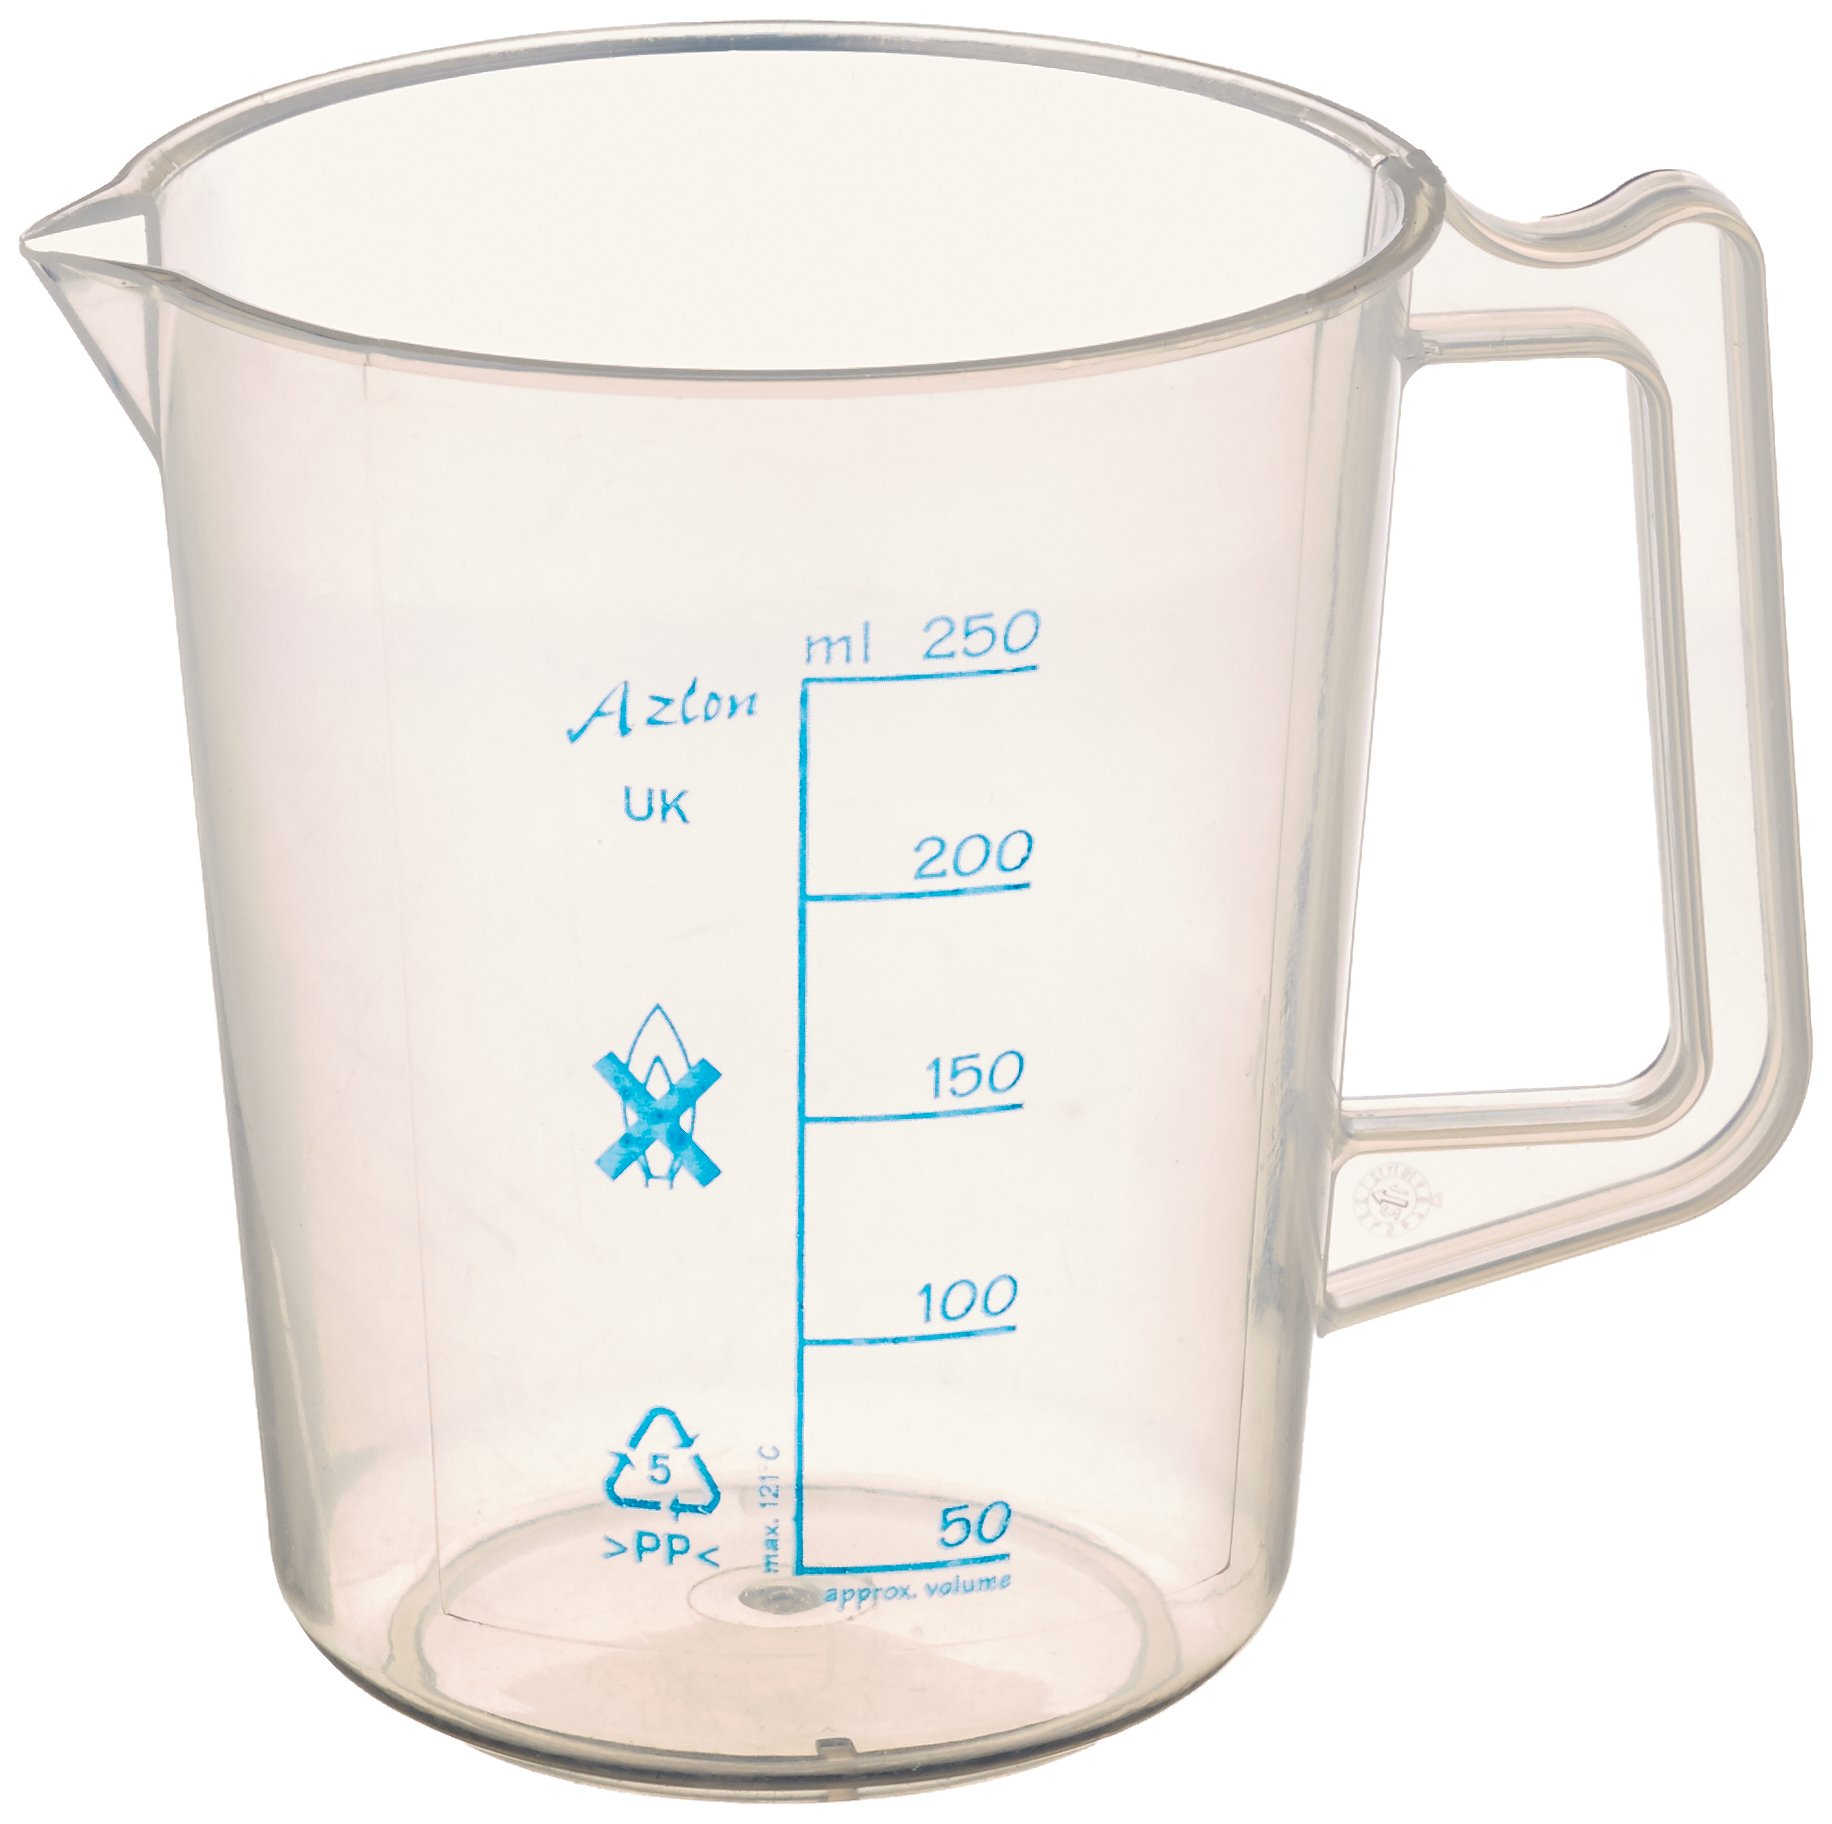 Azlon 526475-0250 Polypropylene Intermediate Form Graduated Beaker/Lab Pitcher with Handle Printed Graduations, 250 ml Capacity